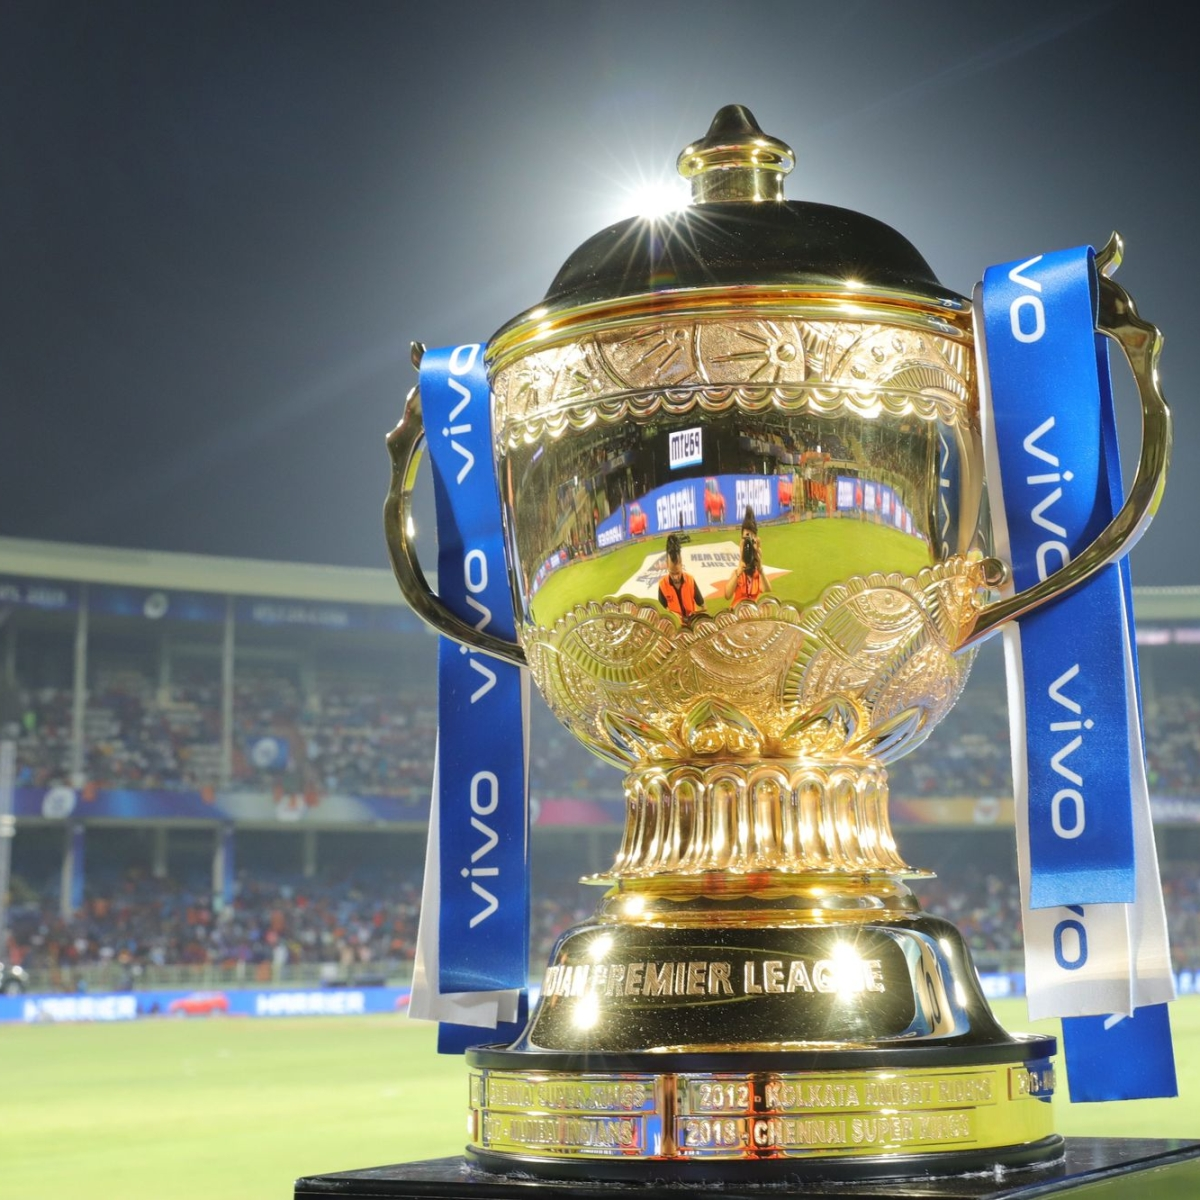 The Bombay Debate: Meet the Moderator and Jury Members of FPJ's upcoming discussion on whether IPL should be held